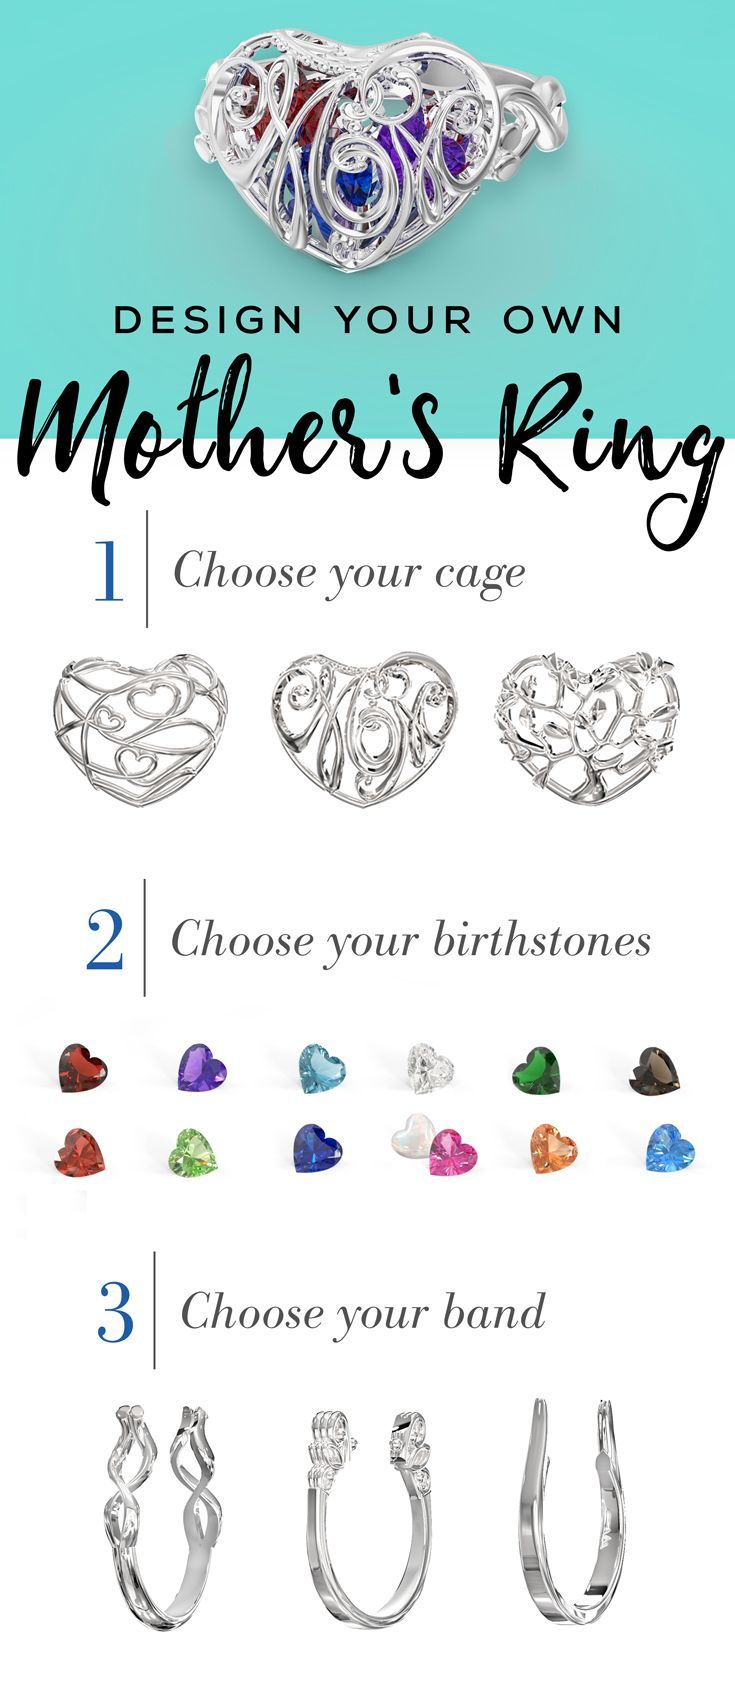 Create the perfect gift for Mom for Mother's Day, her birthday or any special occasion! A stunning 3D heart cage is filled with sparkling birthstones to represent her loved ones, making this a truly unique mother's ring. Personalize this ring with your choice of cage, band, metal and birthstones. You can even add an engraving for a heartfelt finish.